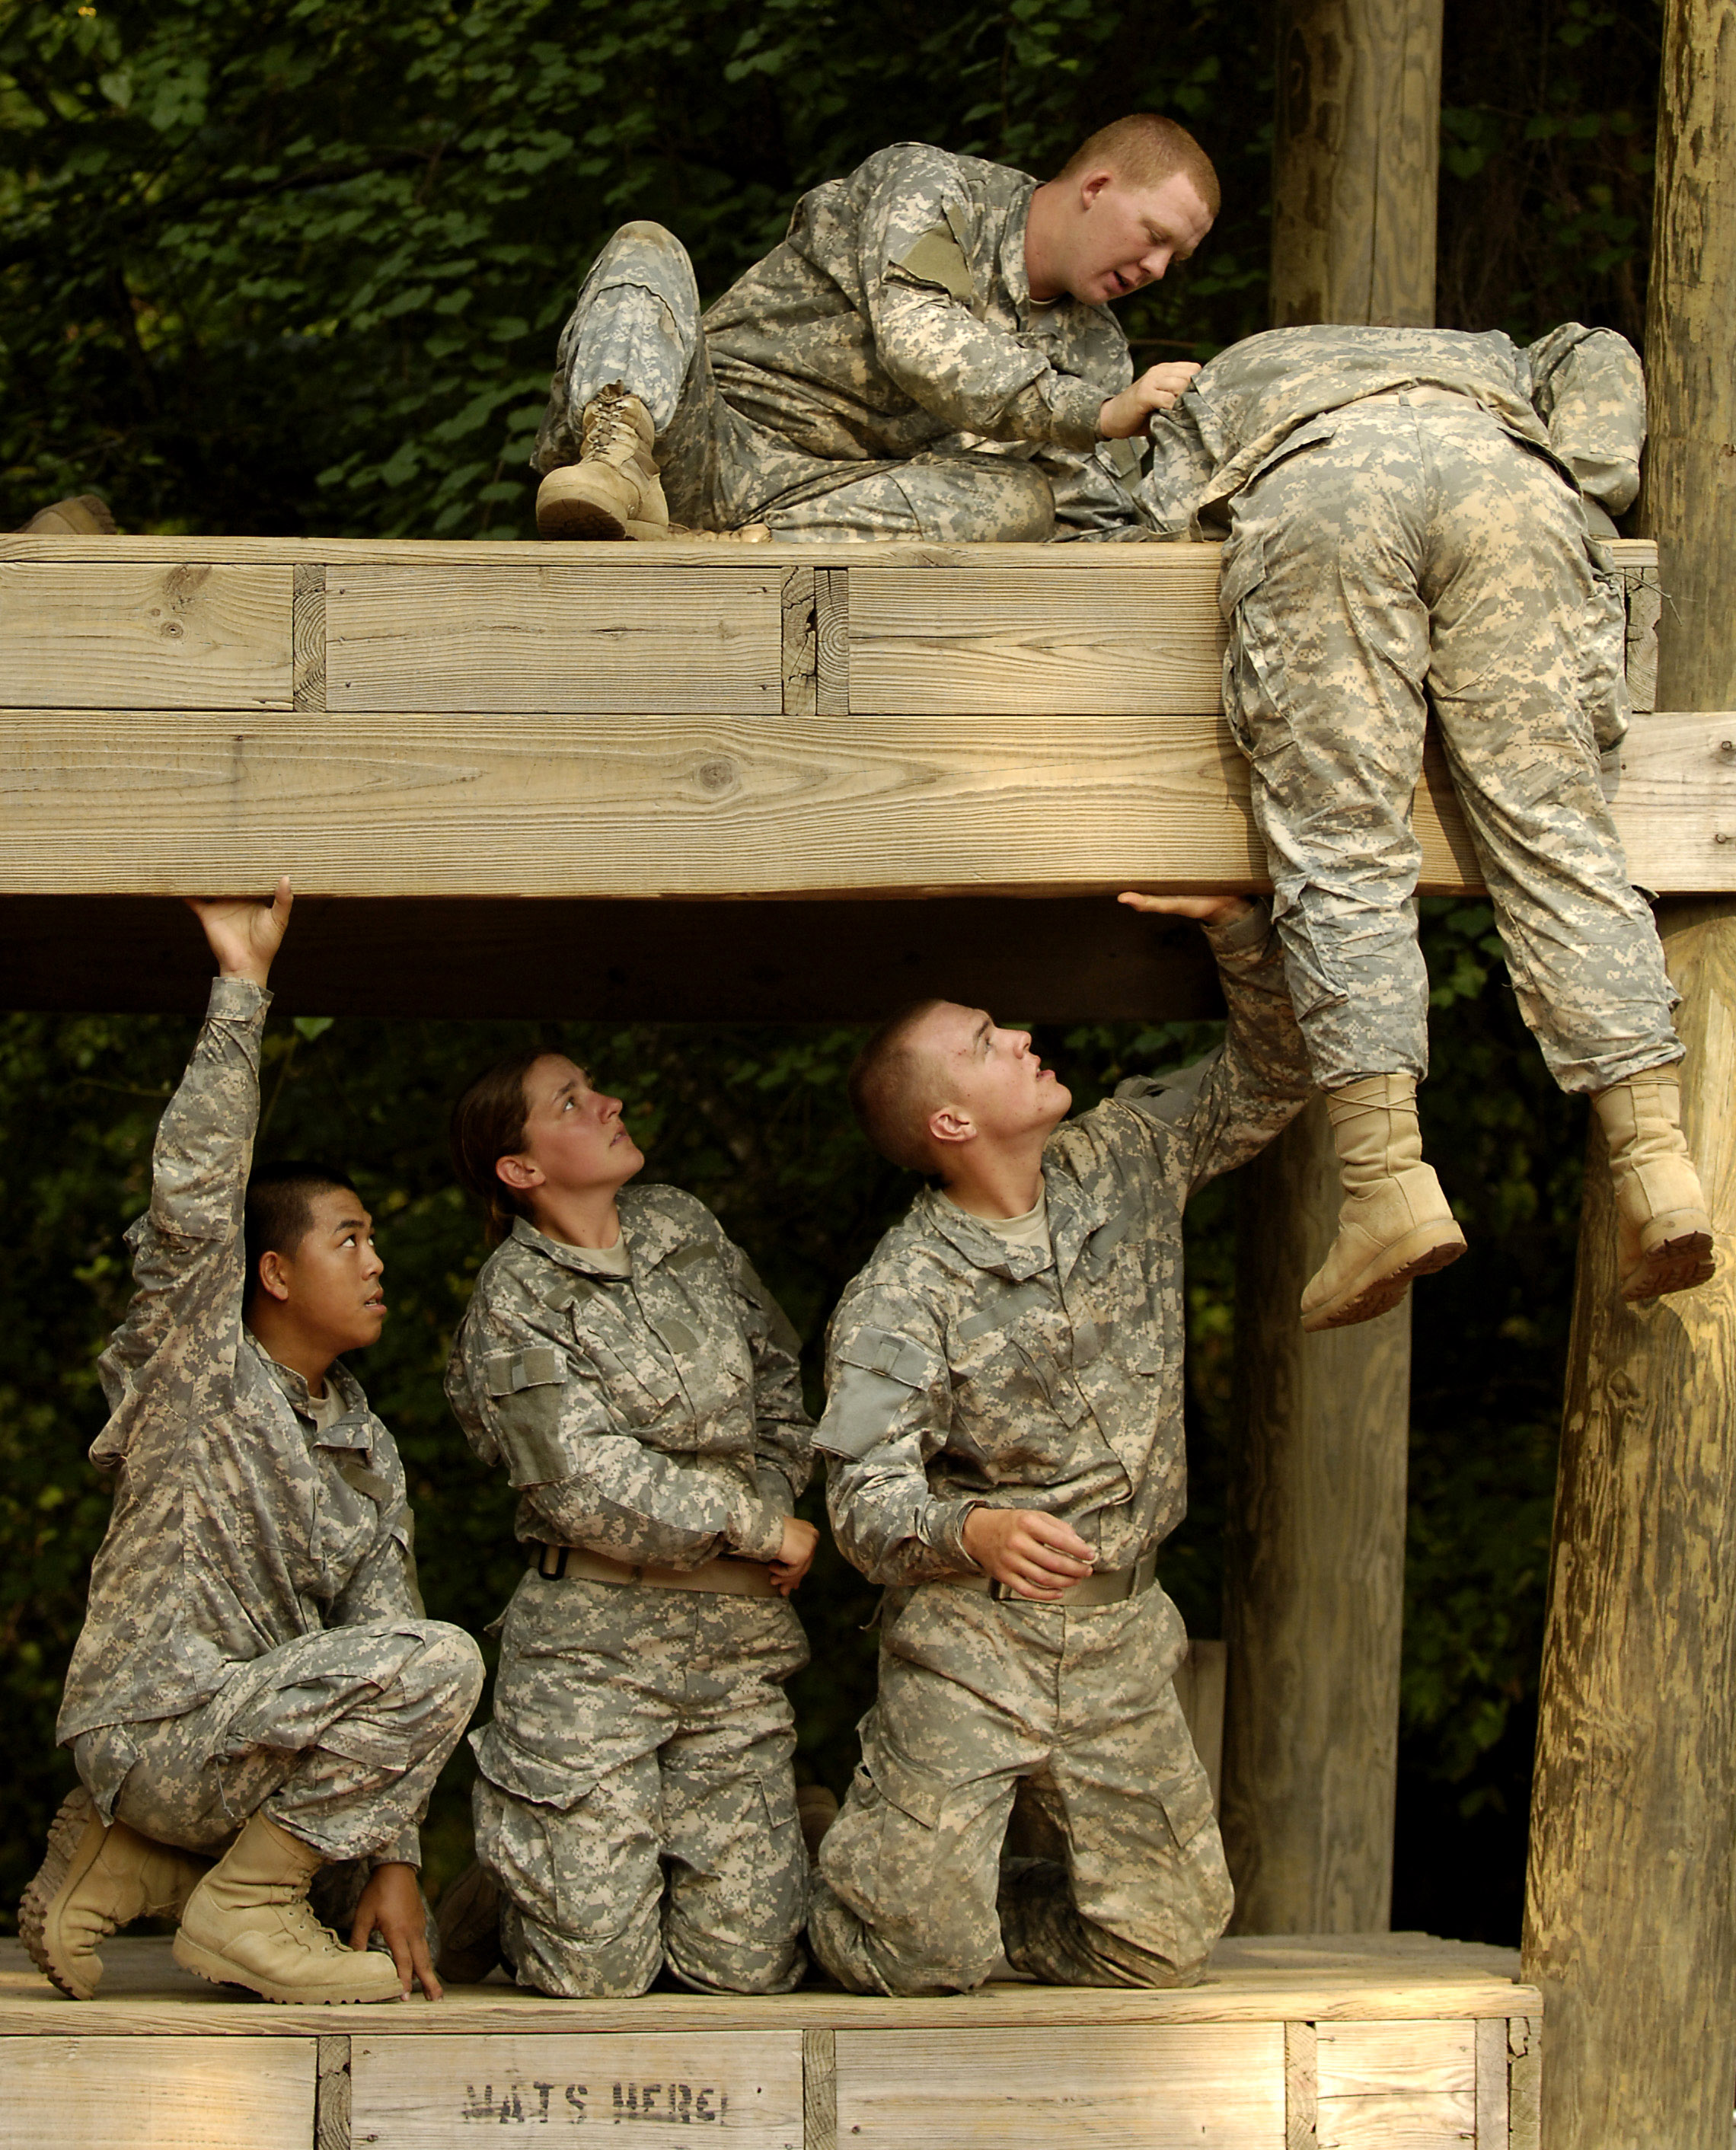 Basic Training Photos >> Army Basic Training Gets A Makeover According To Majastevanovich